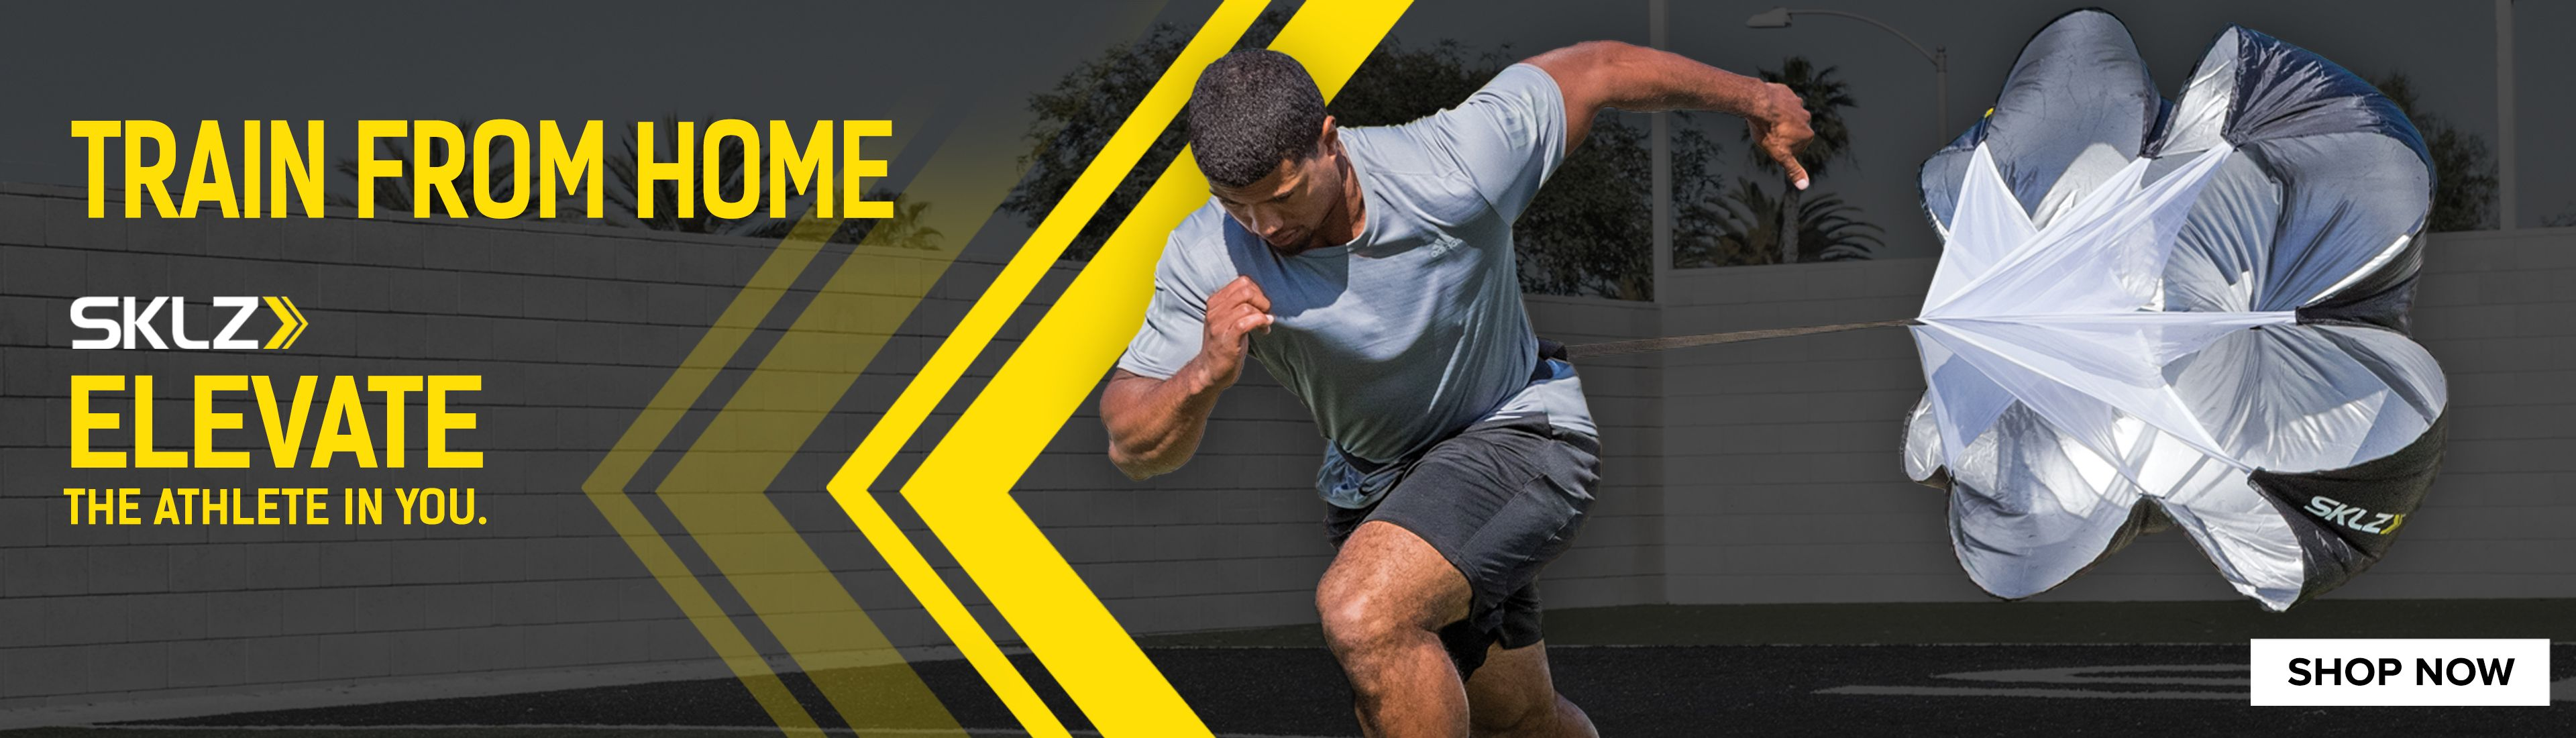 SKLZ Train from Home